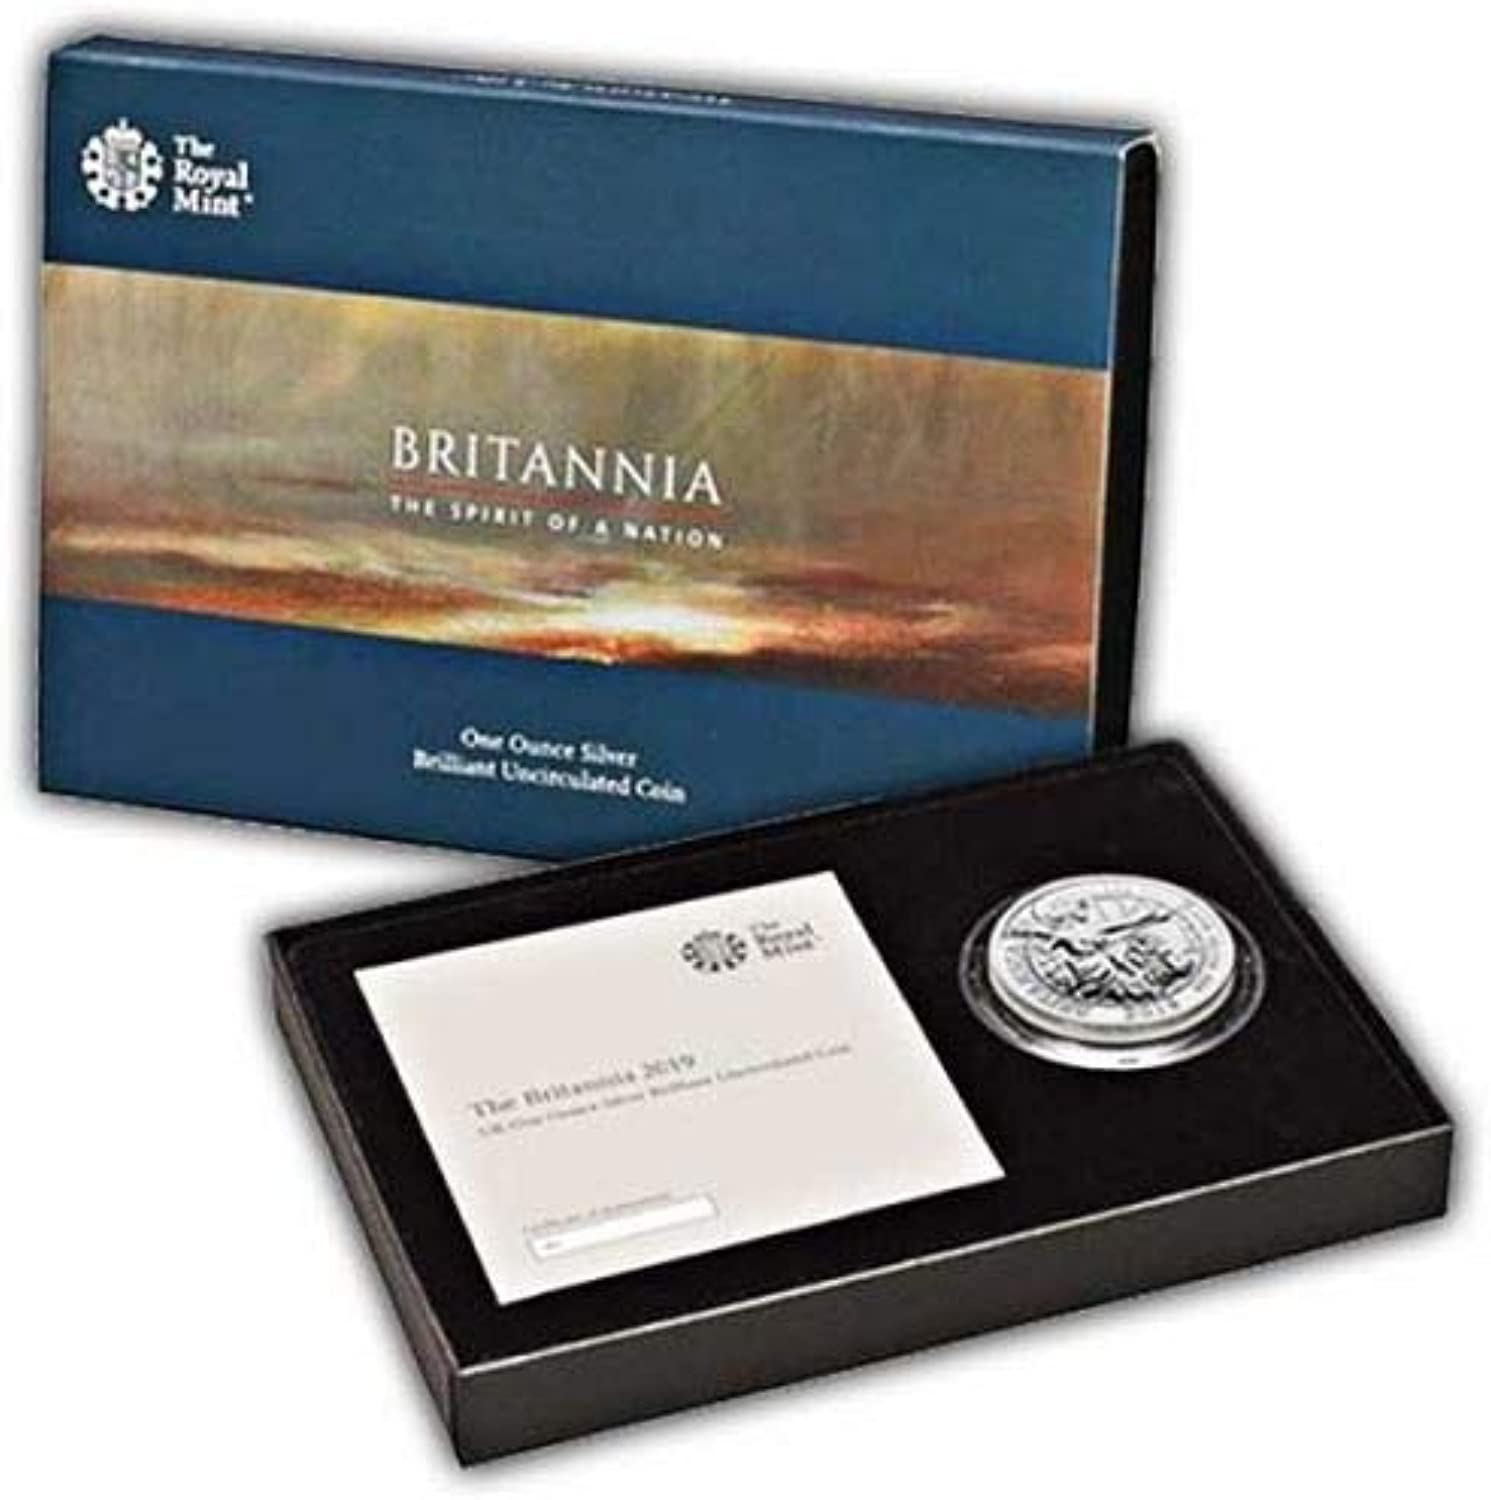 The Britannia 2019 UK Münze, unzirkuliertes Silber, 1 Unze